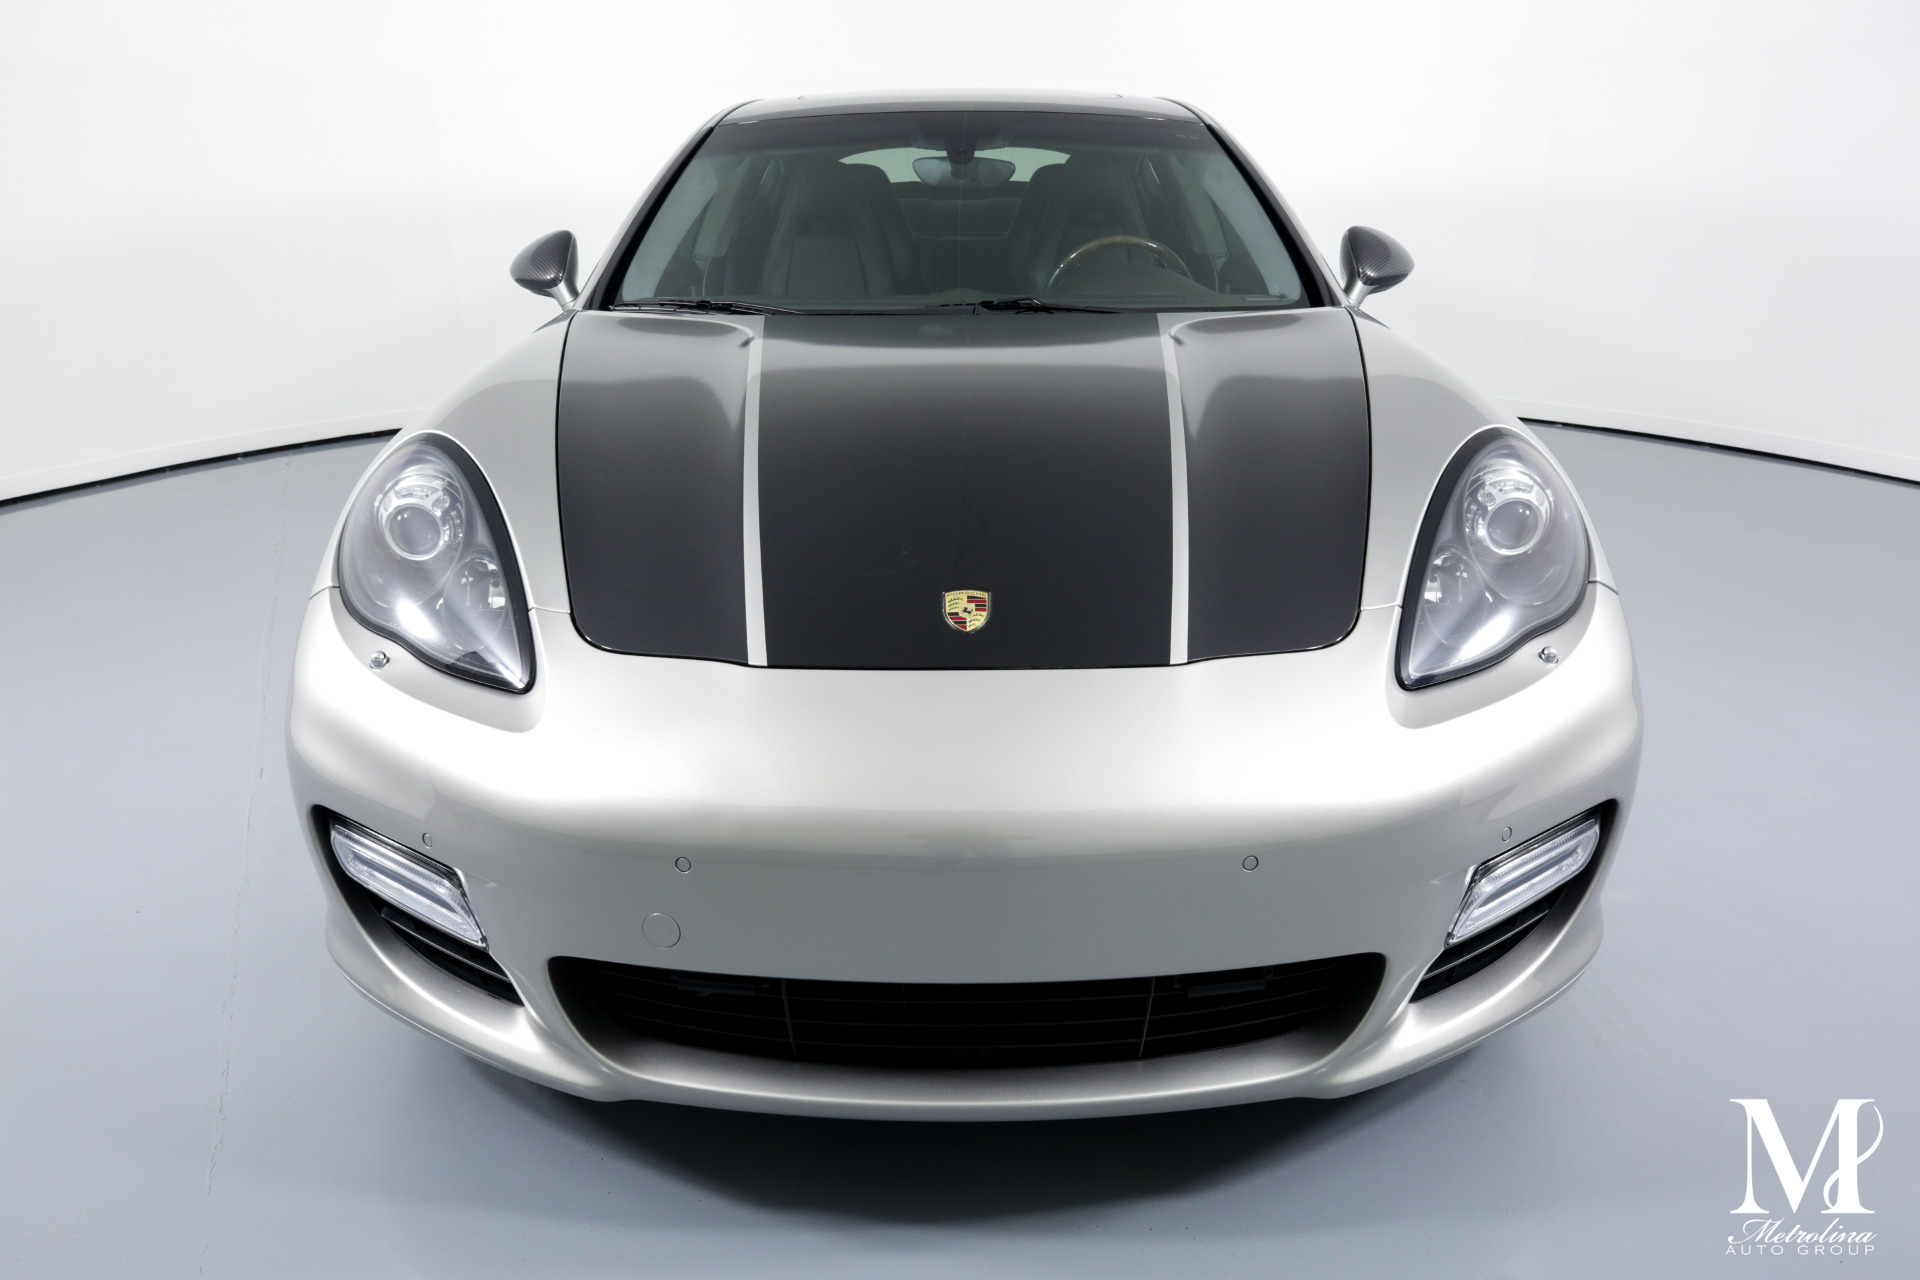 Used 2012 Porsche Panamera Turbo for sale $51,996 at Metrolina Auto Group in Charlotte NC 28217 - 3